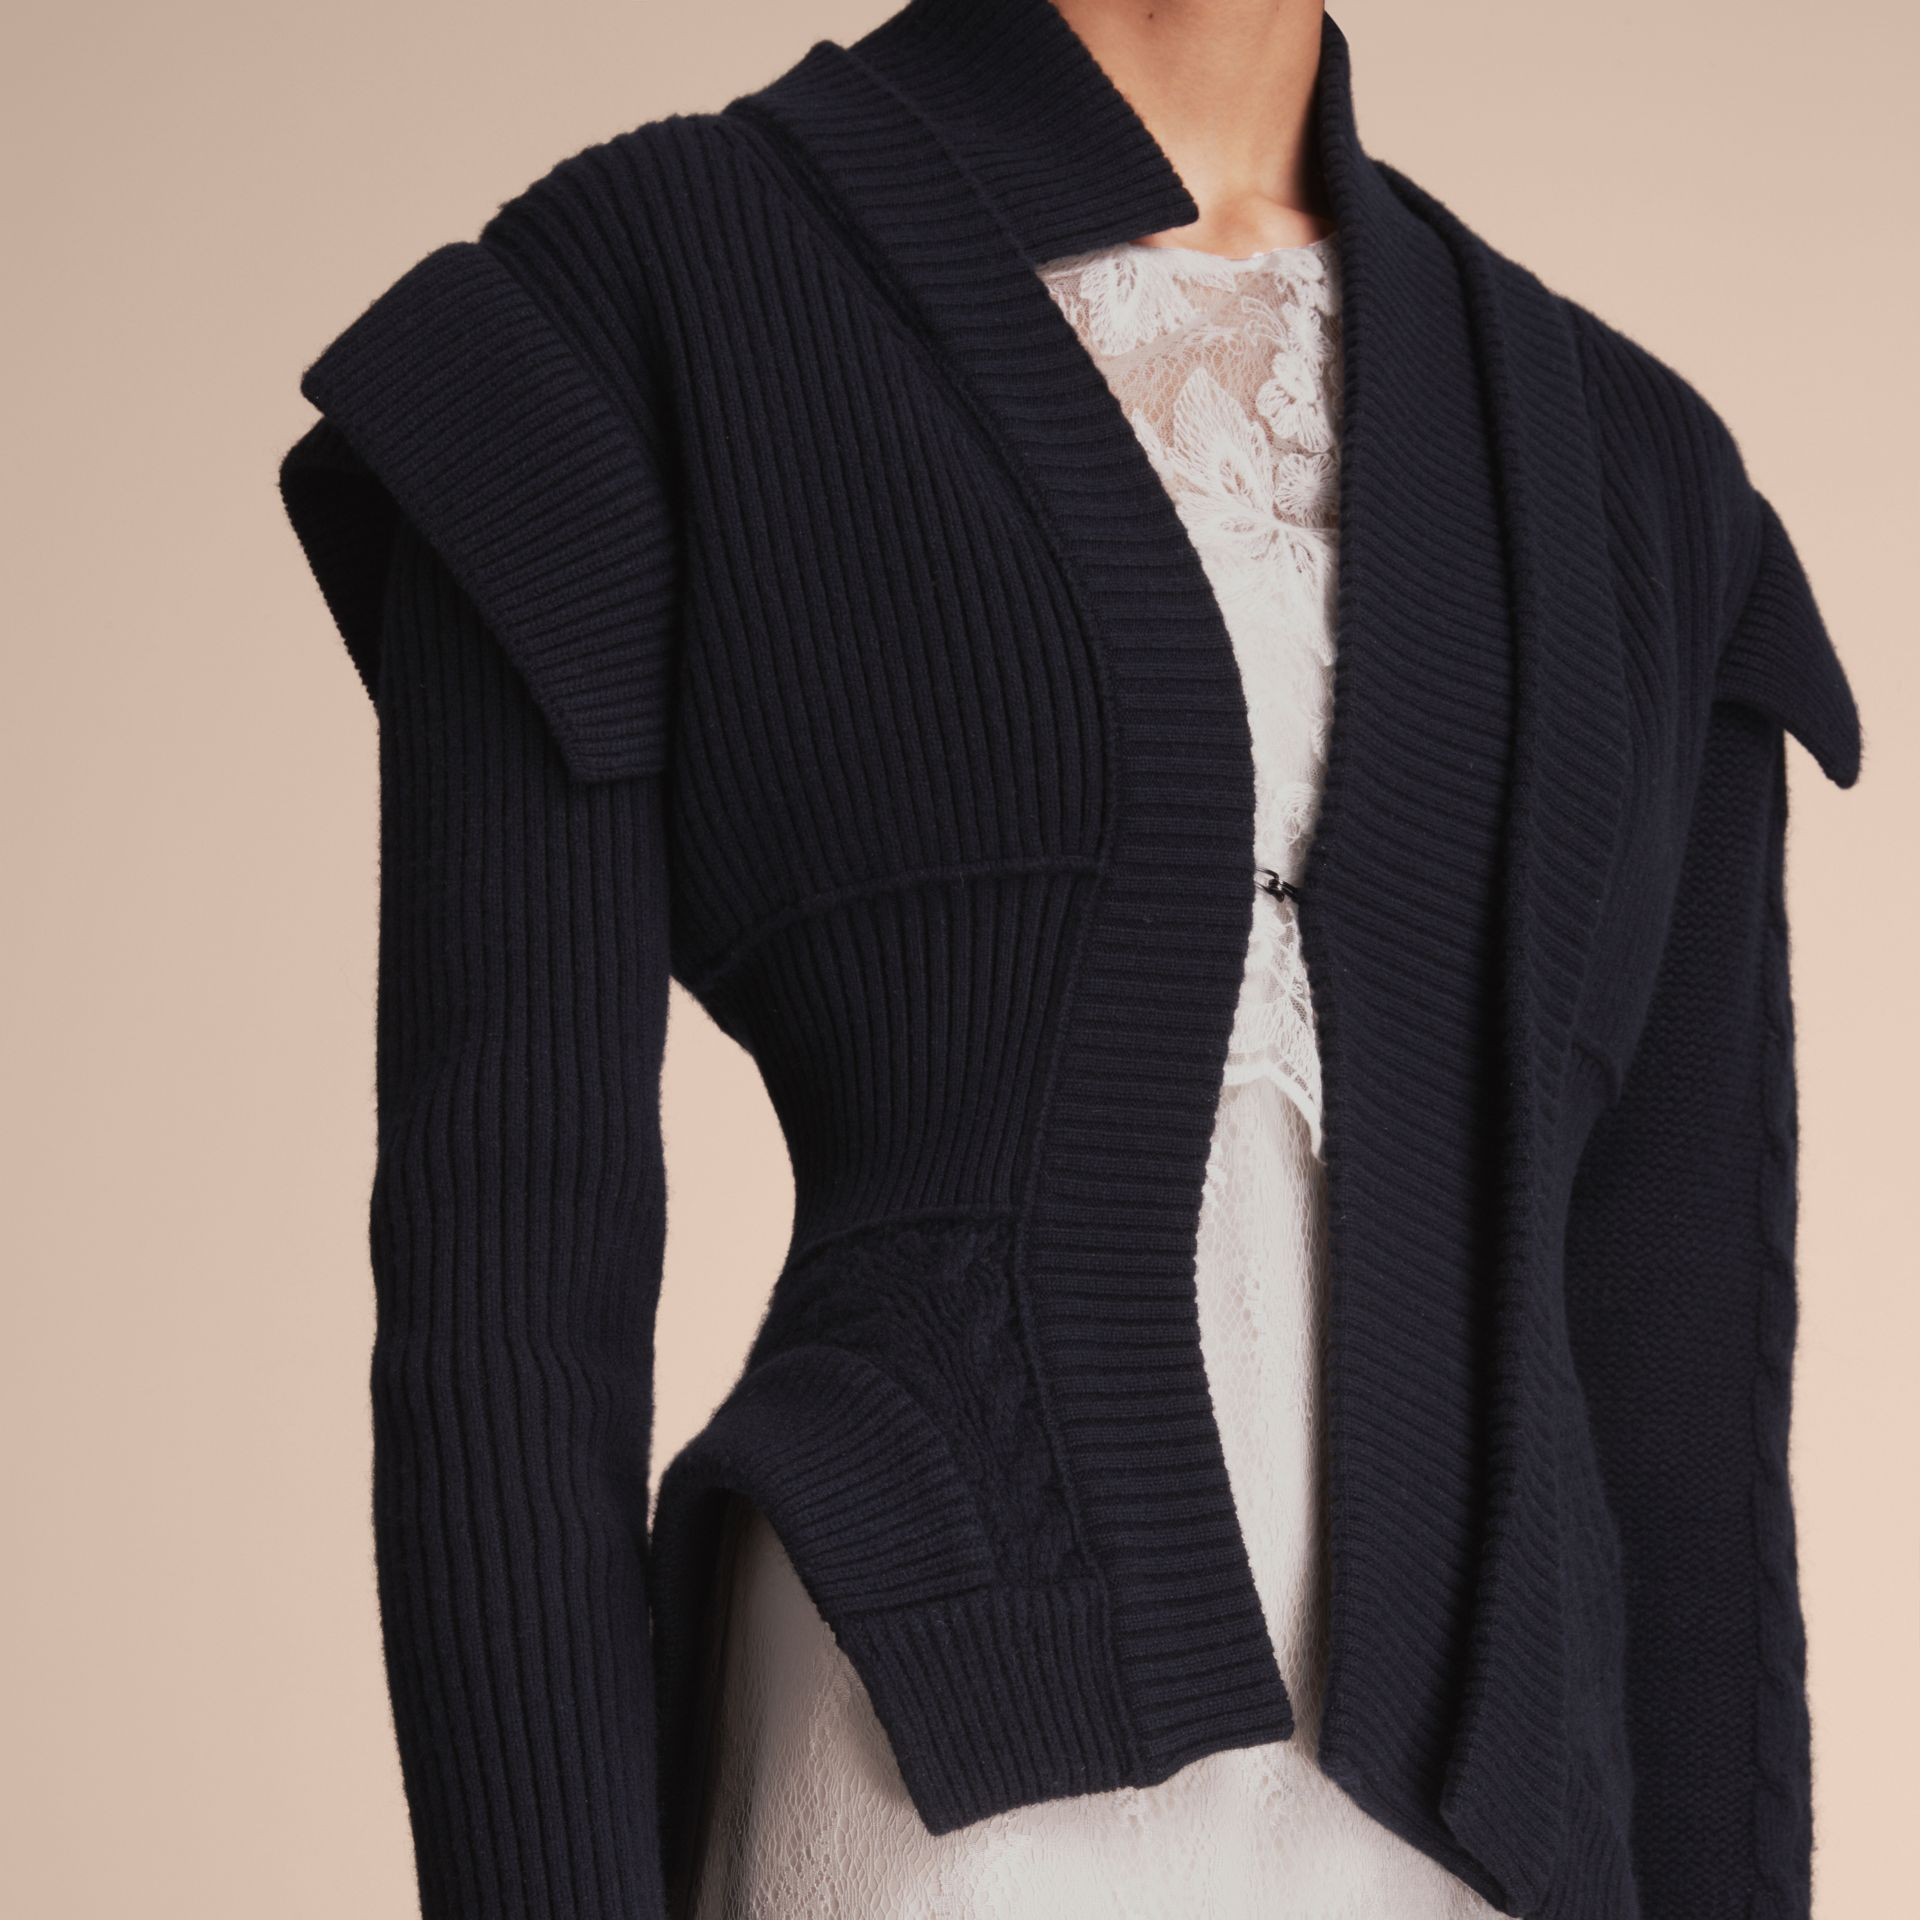 Knitted Wool Cashmere Military-inspired Jacket in Navy - Women | Burberry - gallery image 5